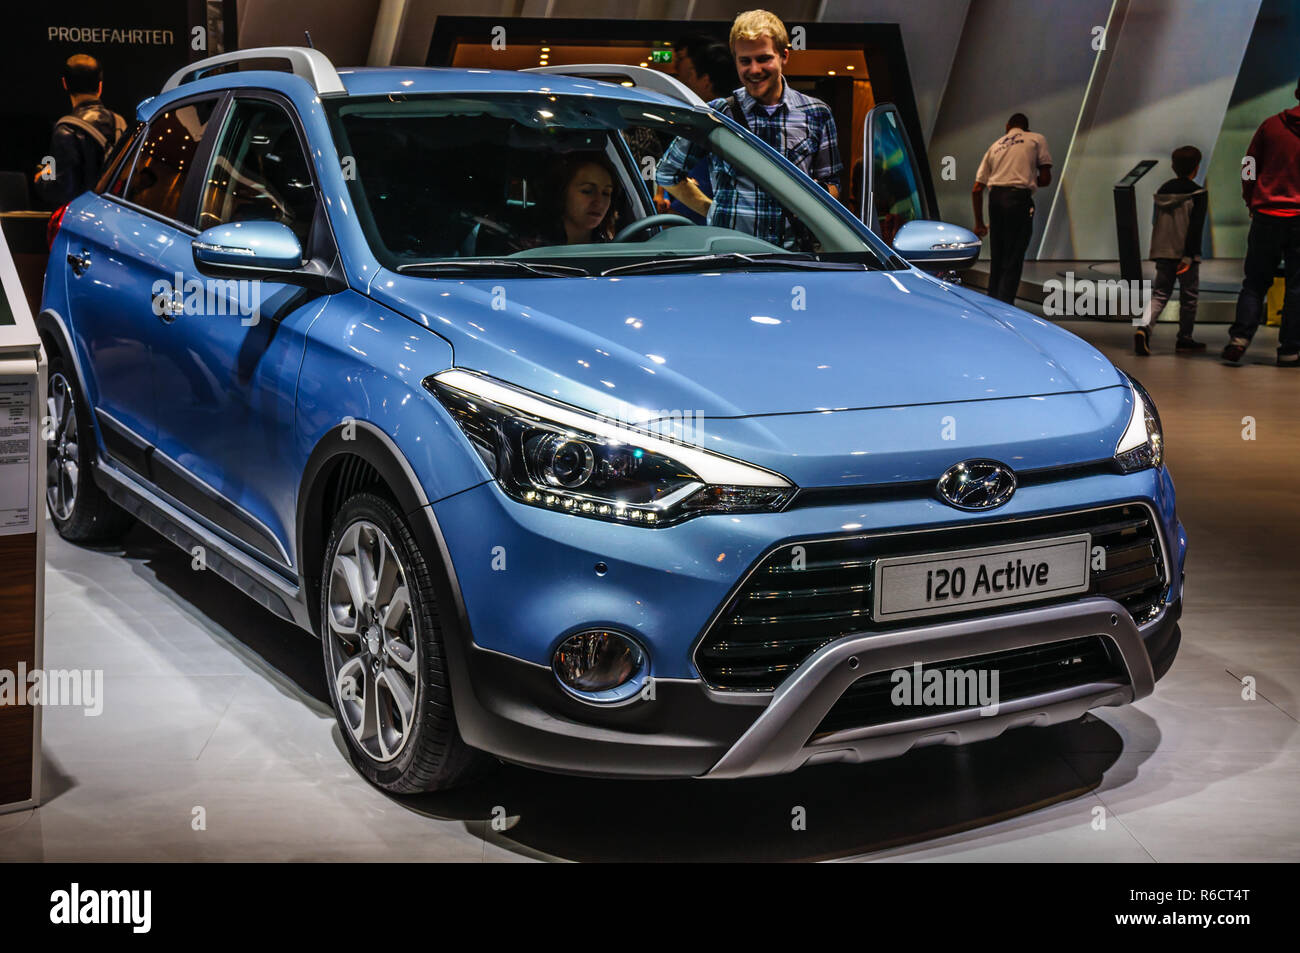 Frankfurt Sept 2015 Hyundai I20 Active Presented At Iaa International Motor Show On September 20 2015 In Frankfurt Germany Stock Photo Alamy